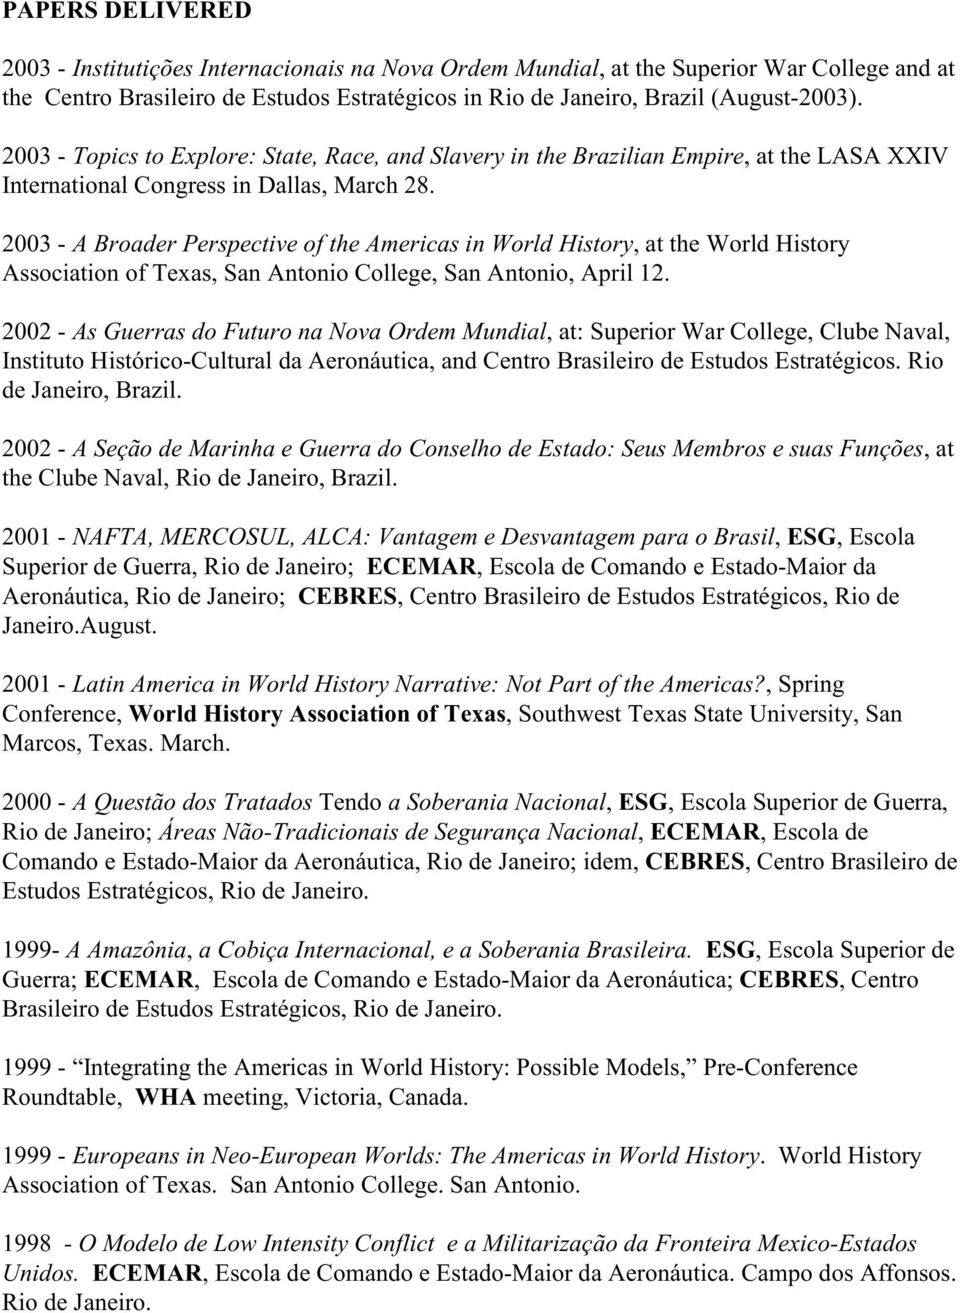 2003 - A Broader Perspective of the Americas in World History, at the World History Association of Texas, San Antonio College, San Antonio, April 12.